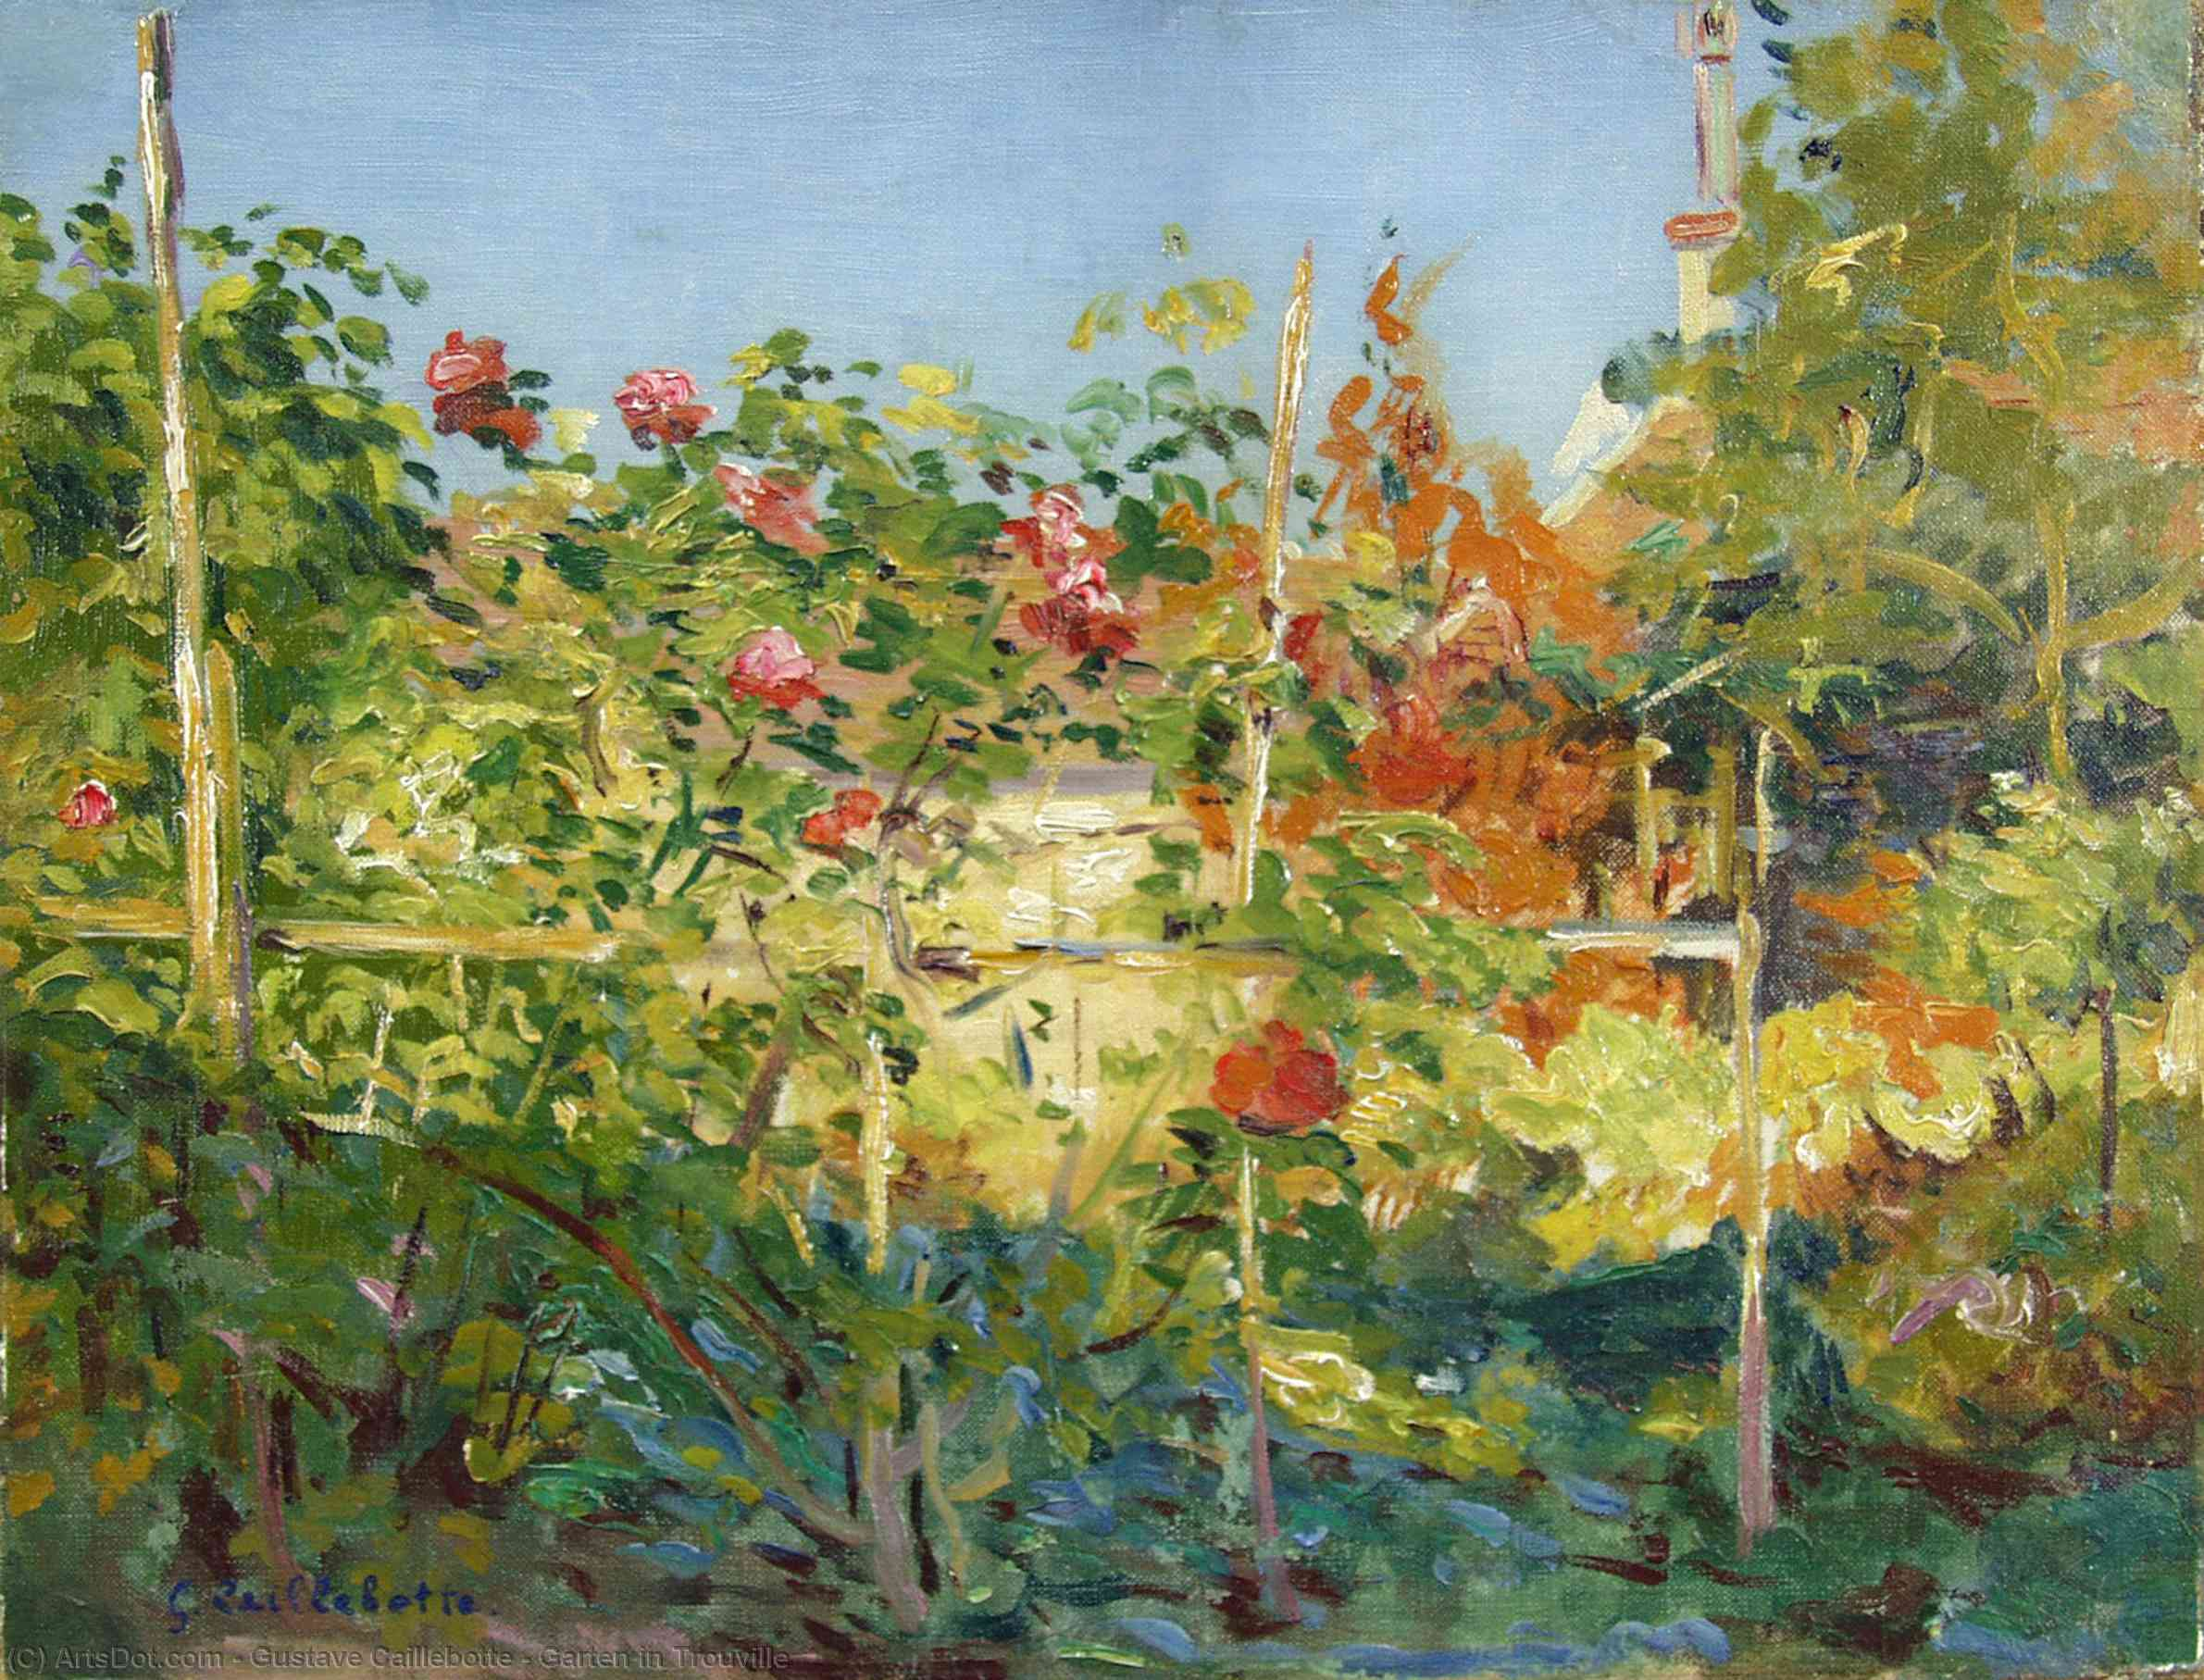 Wikioo.org - The Encyclopedia of Fine Arts - Painting, Artwork by Gustave Caillebotte - Garten in Trouville